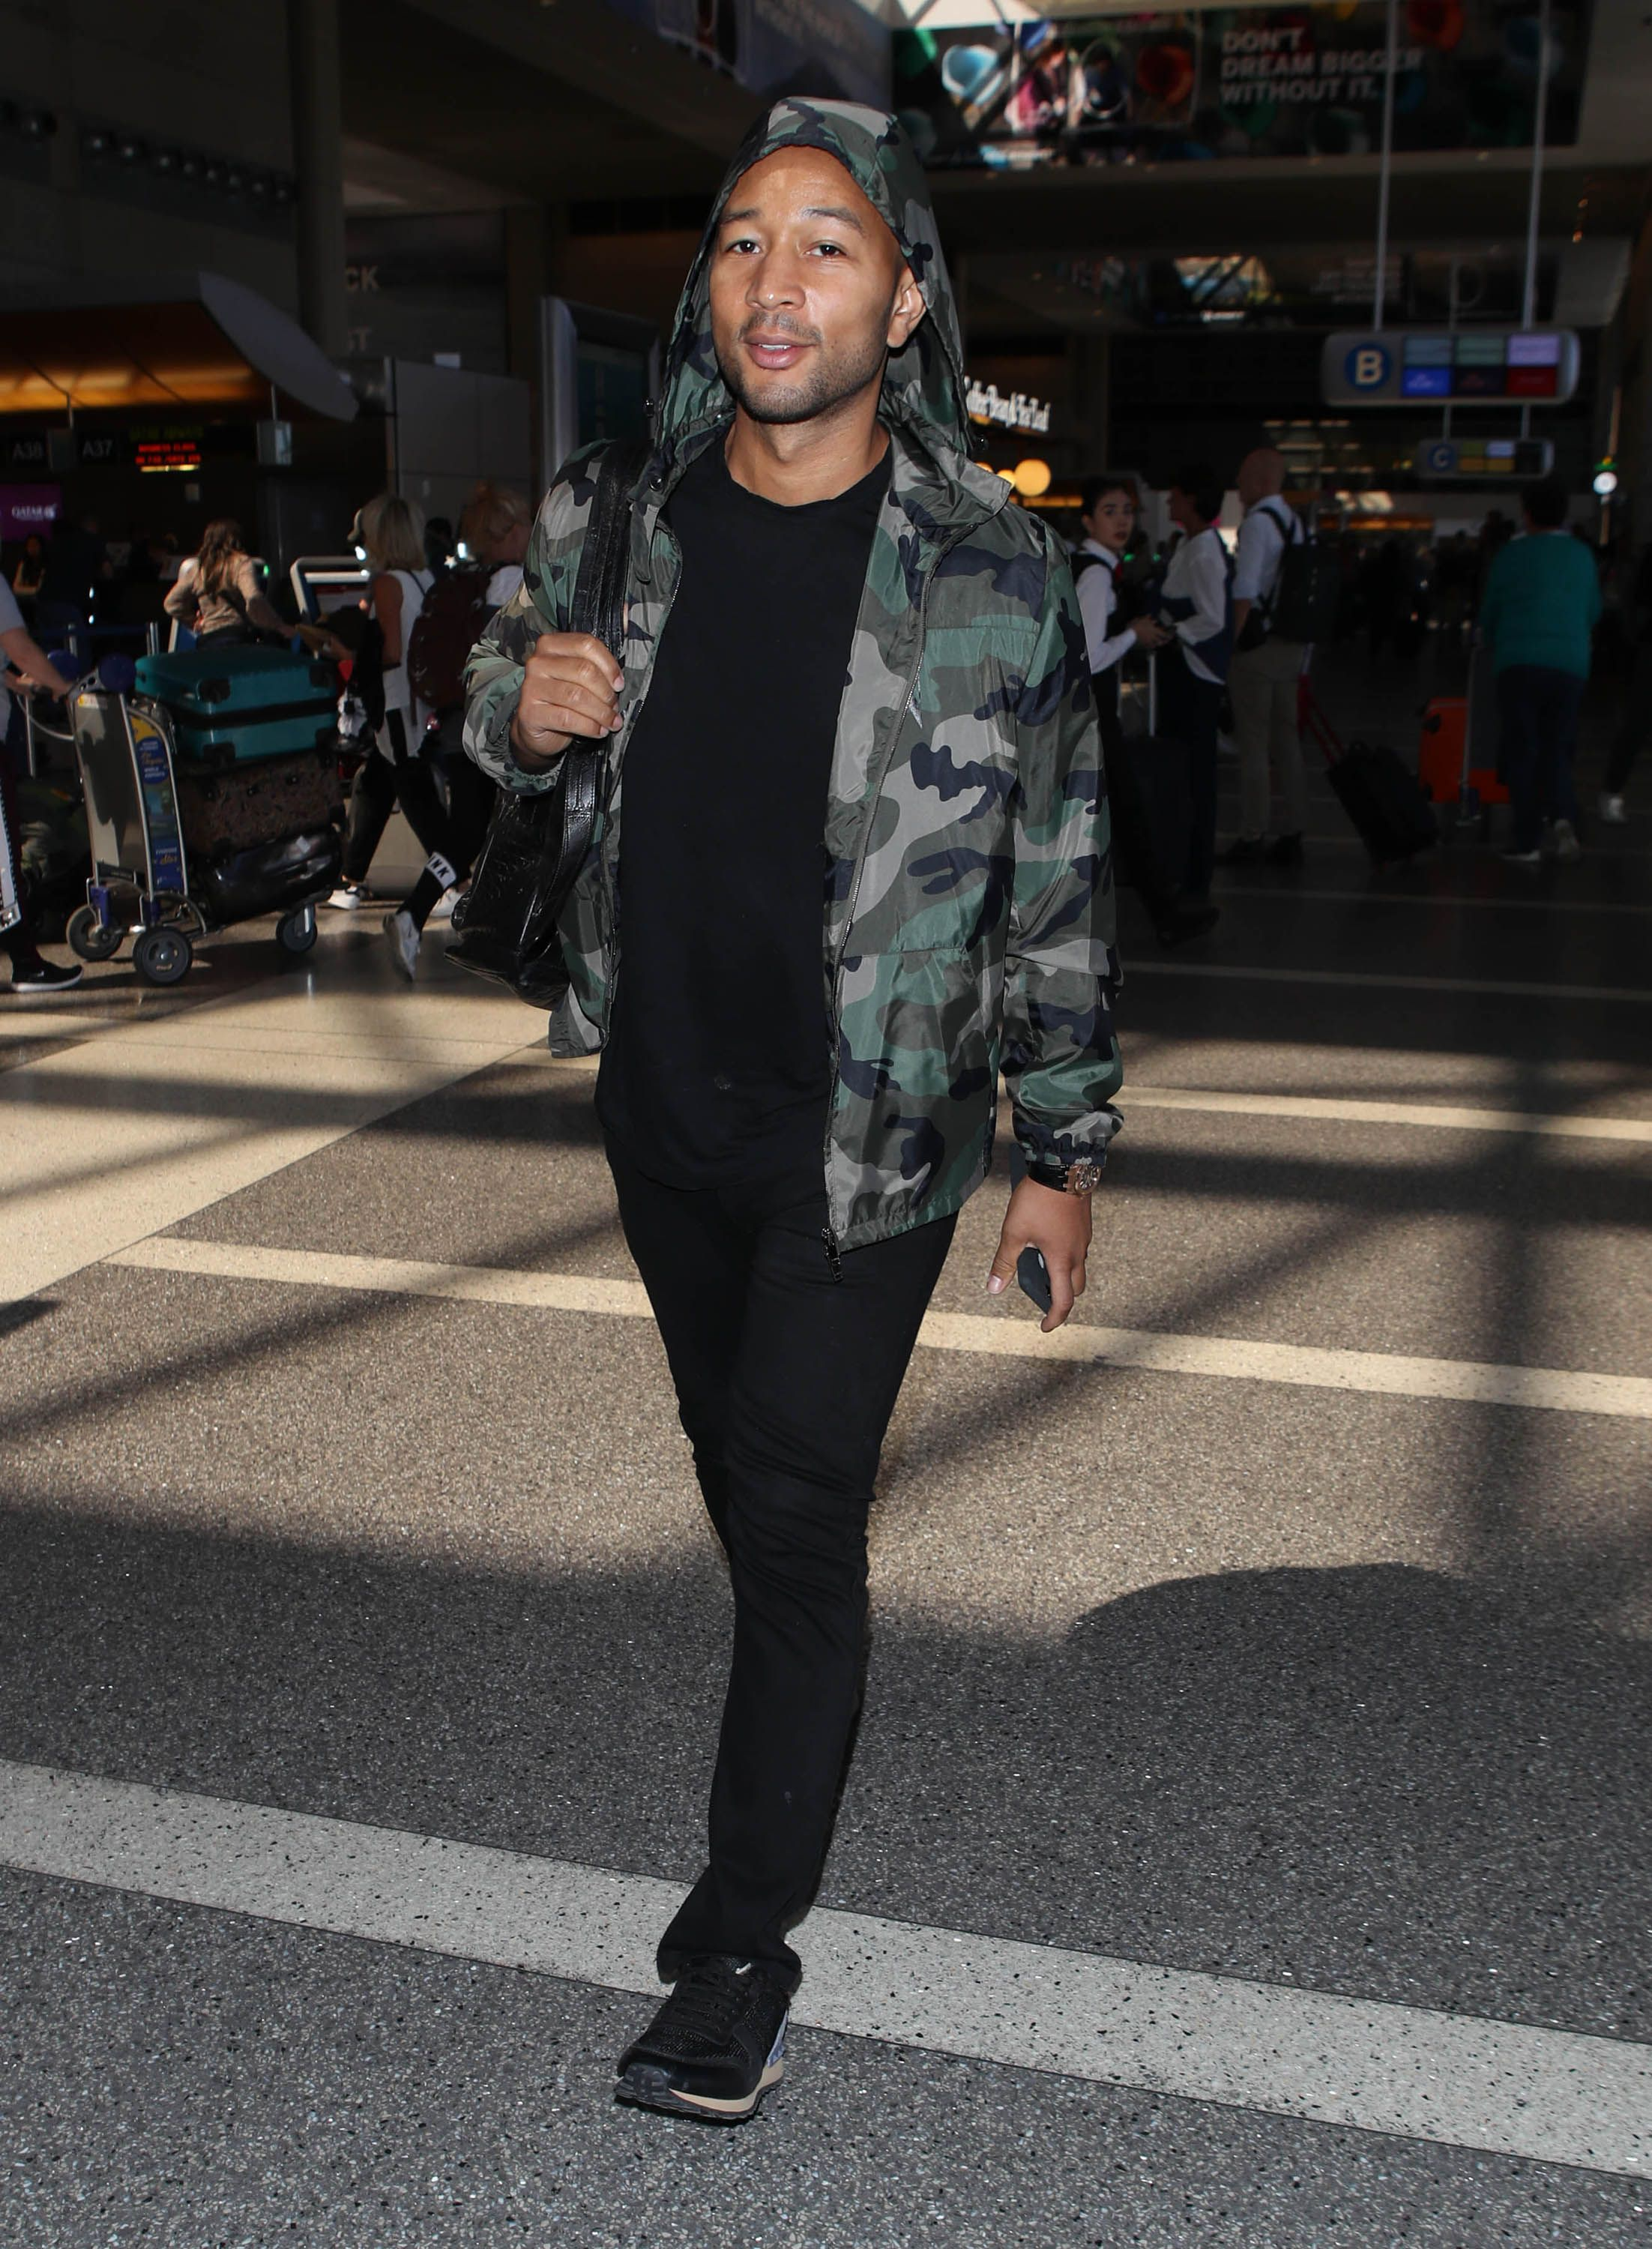 John Legend John Legend knows how to do just enough to make his style feel fresh but not overdone. A camo rain jacket and black suede runners are an easy example of how you can replicate it.